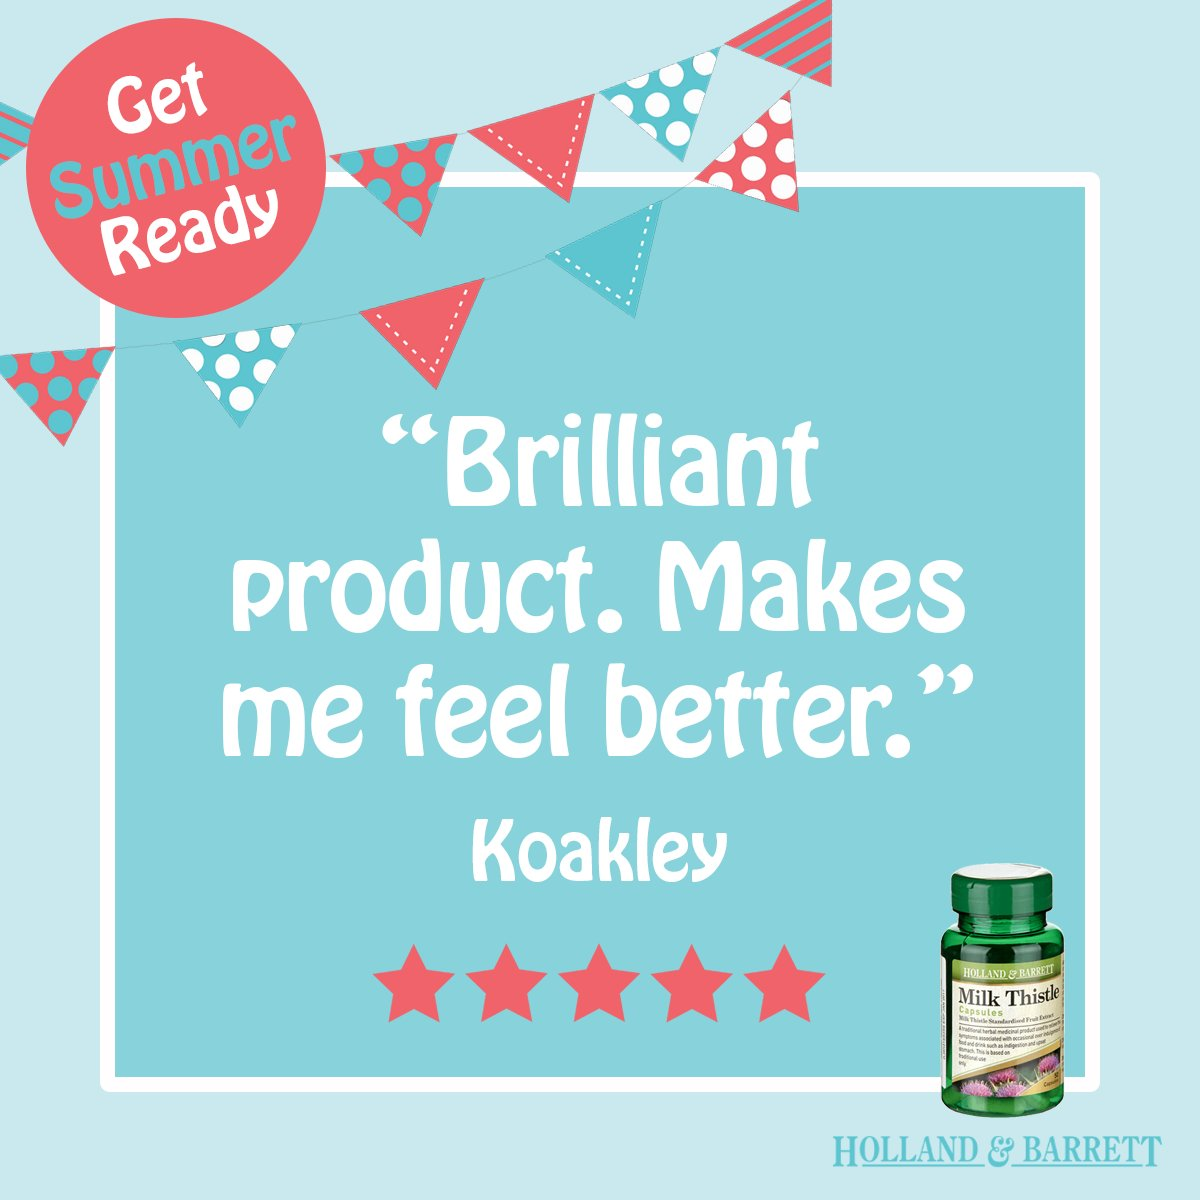 Koakley gave our Milk Thistle five stars! Have you tried it? https://t.co/IyFHhTLIog